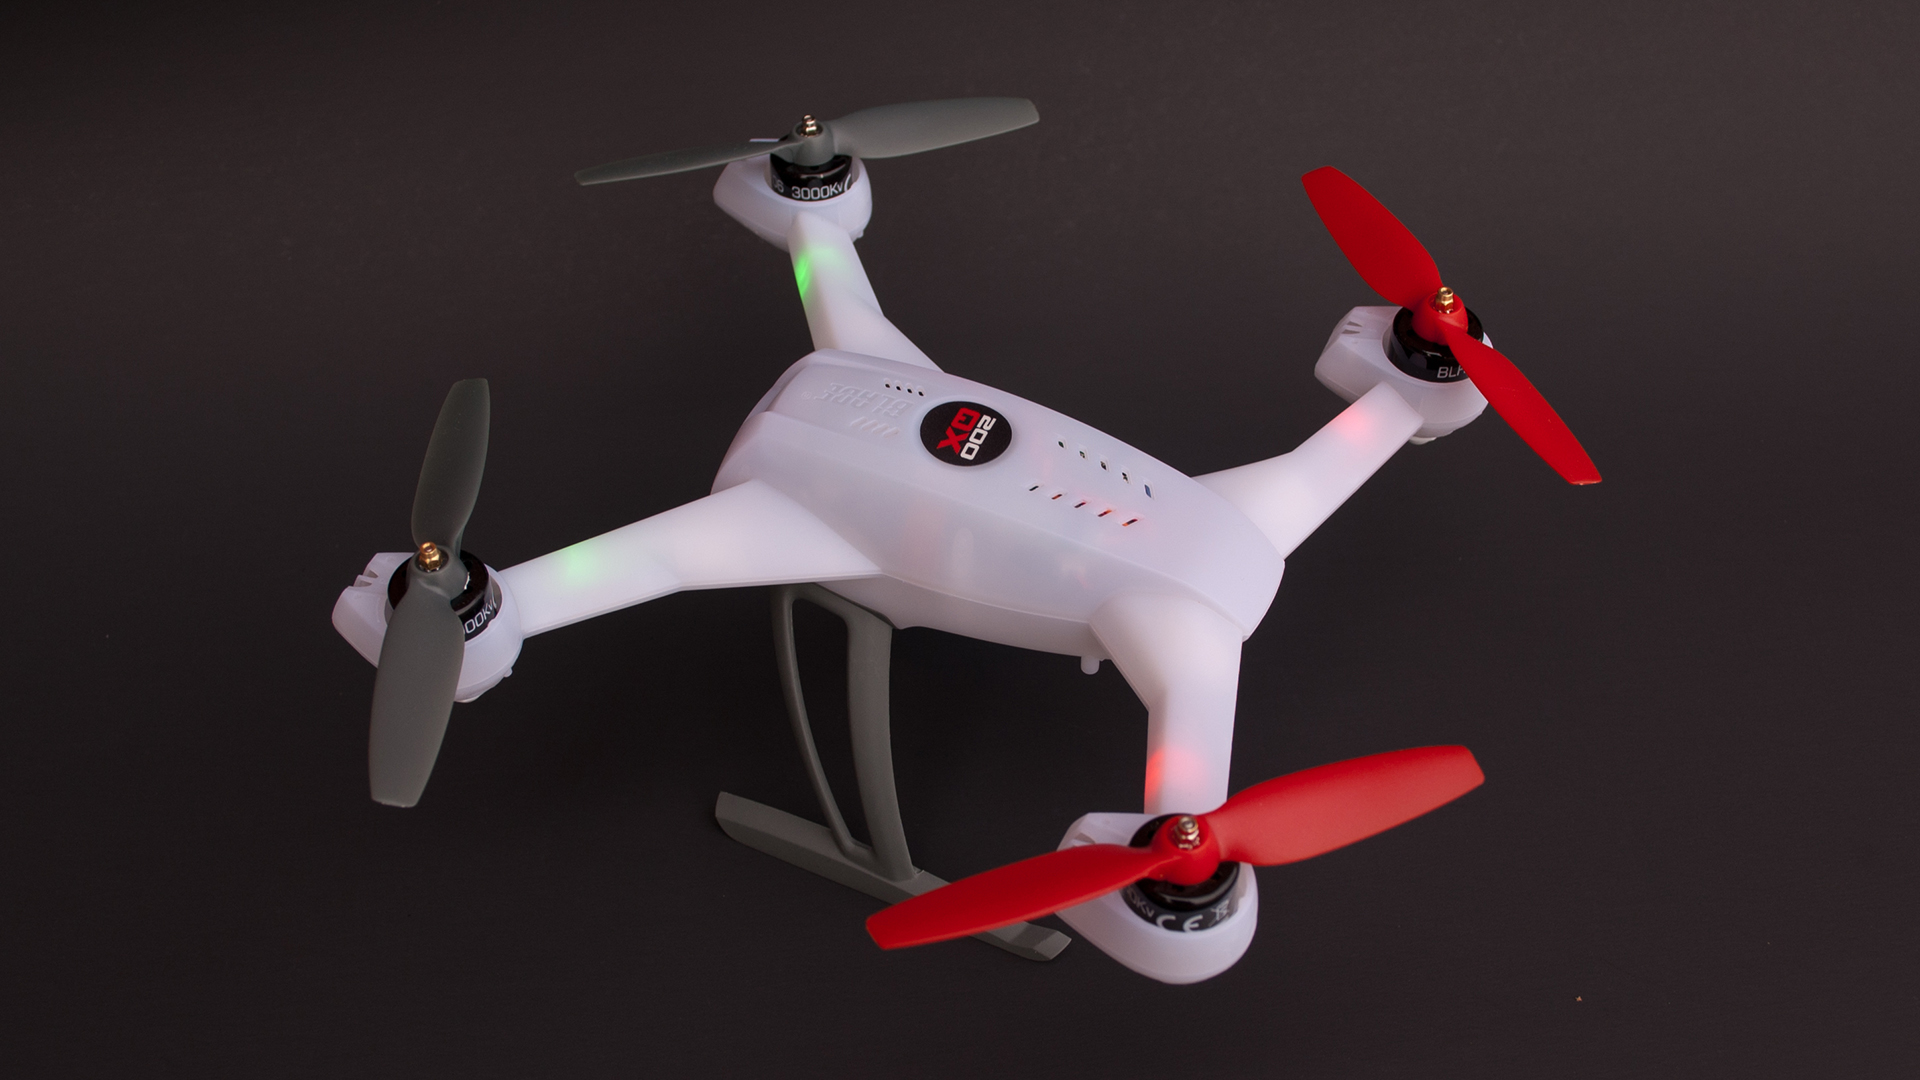 Testing Blade 200qx A Multi Purpose Rotor Tested 350 Qx Battery Wiring Diagram The Offers Styling Similar To Blades Larger Quad Rotors Brushless Motors And 2 Cell Lipo Provide Ample Power